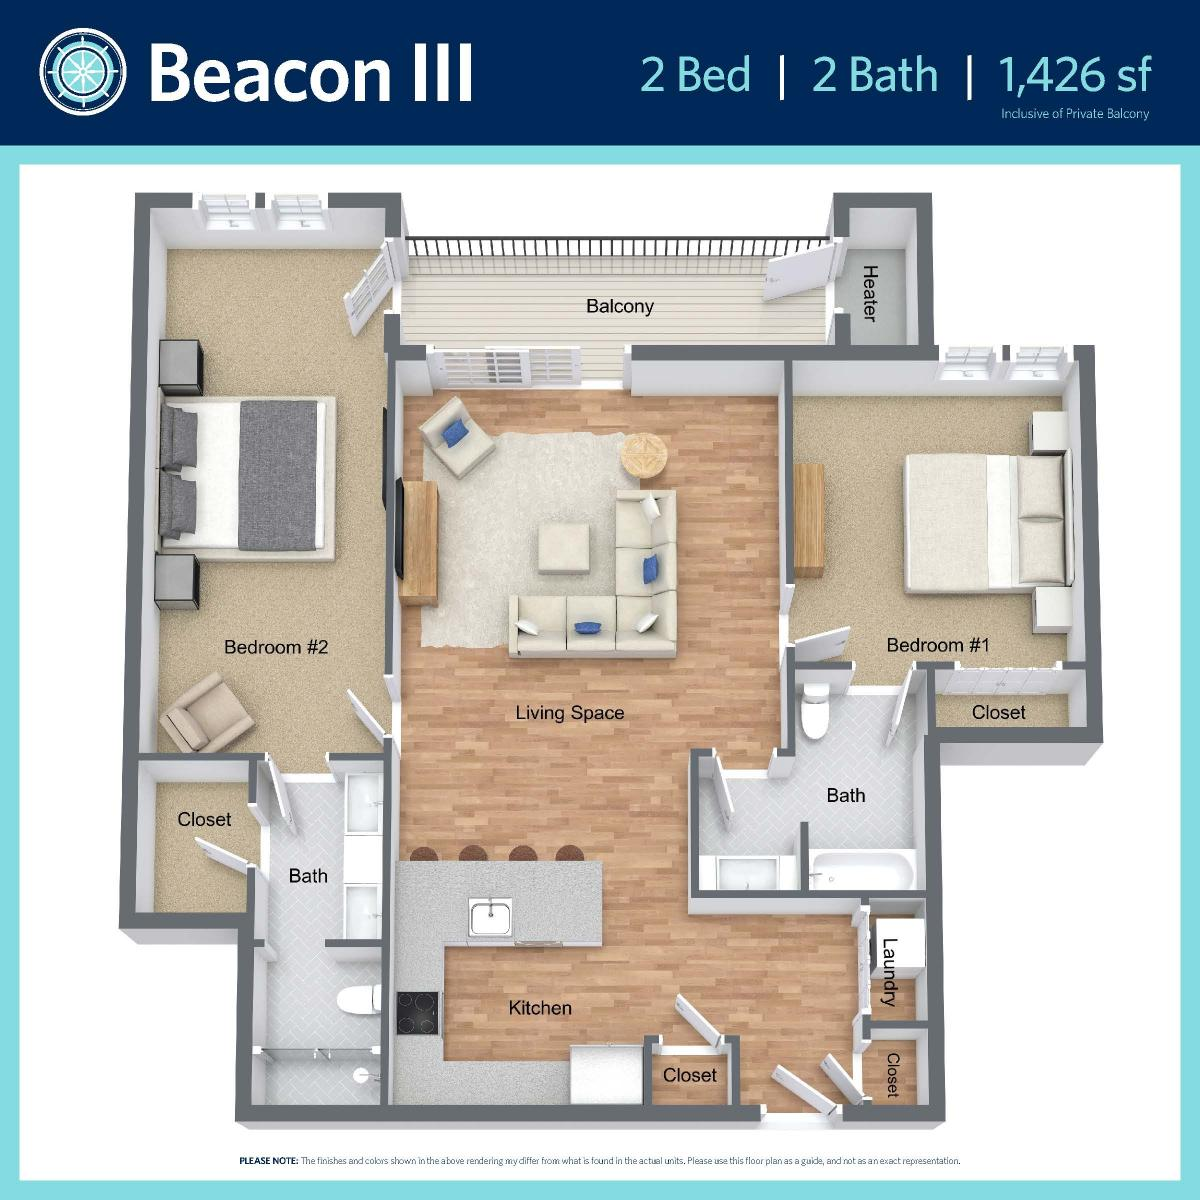 Beacon III -2 bed, 2 bath -1,426 sq ft